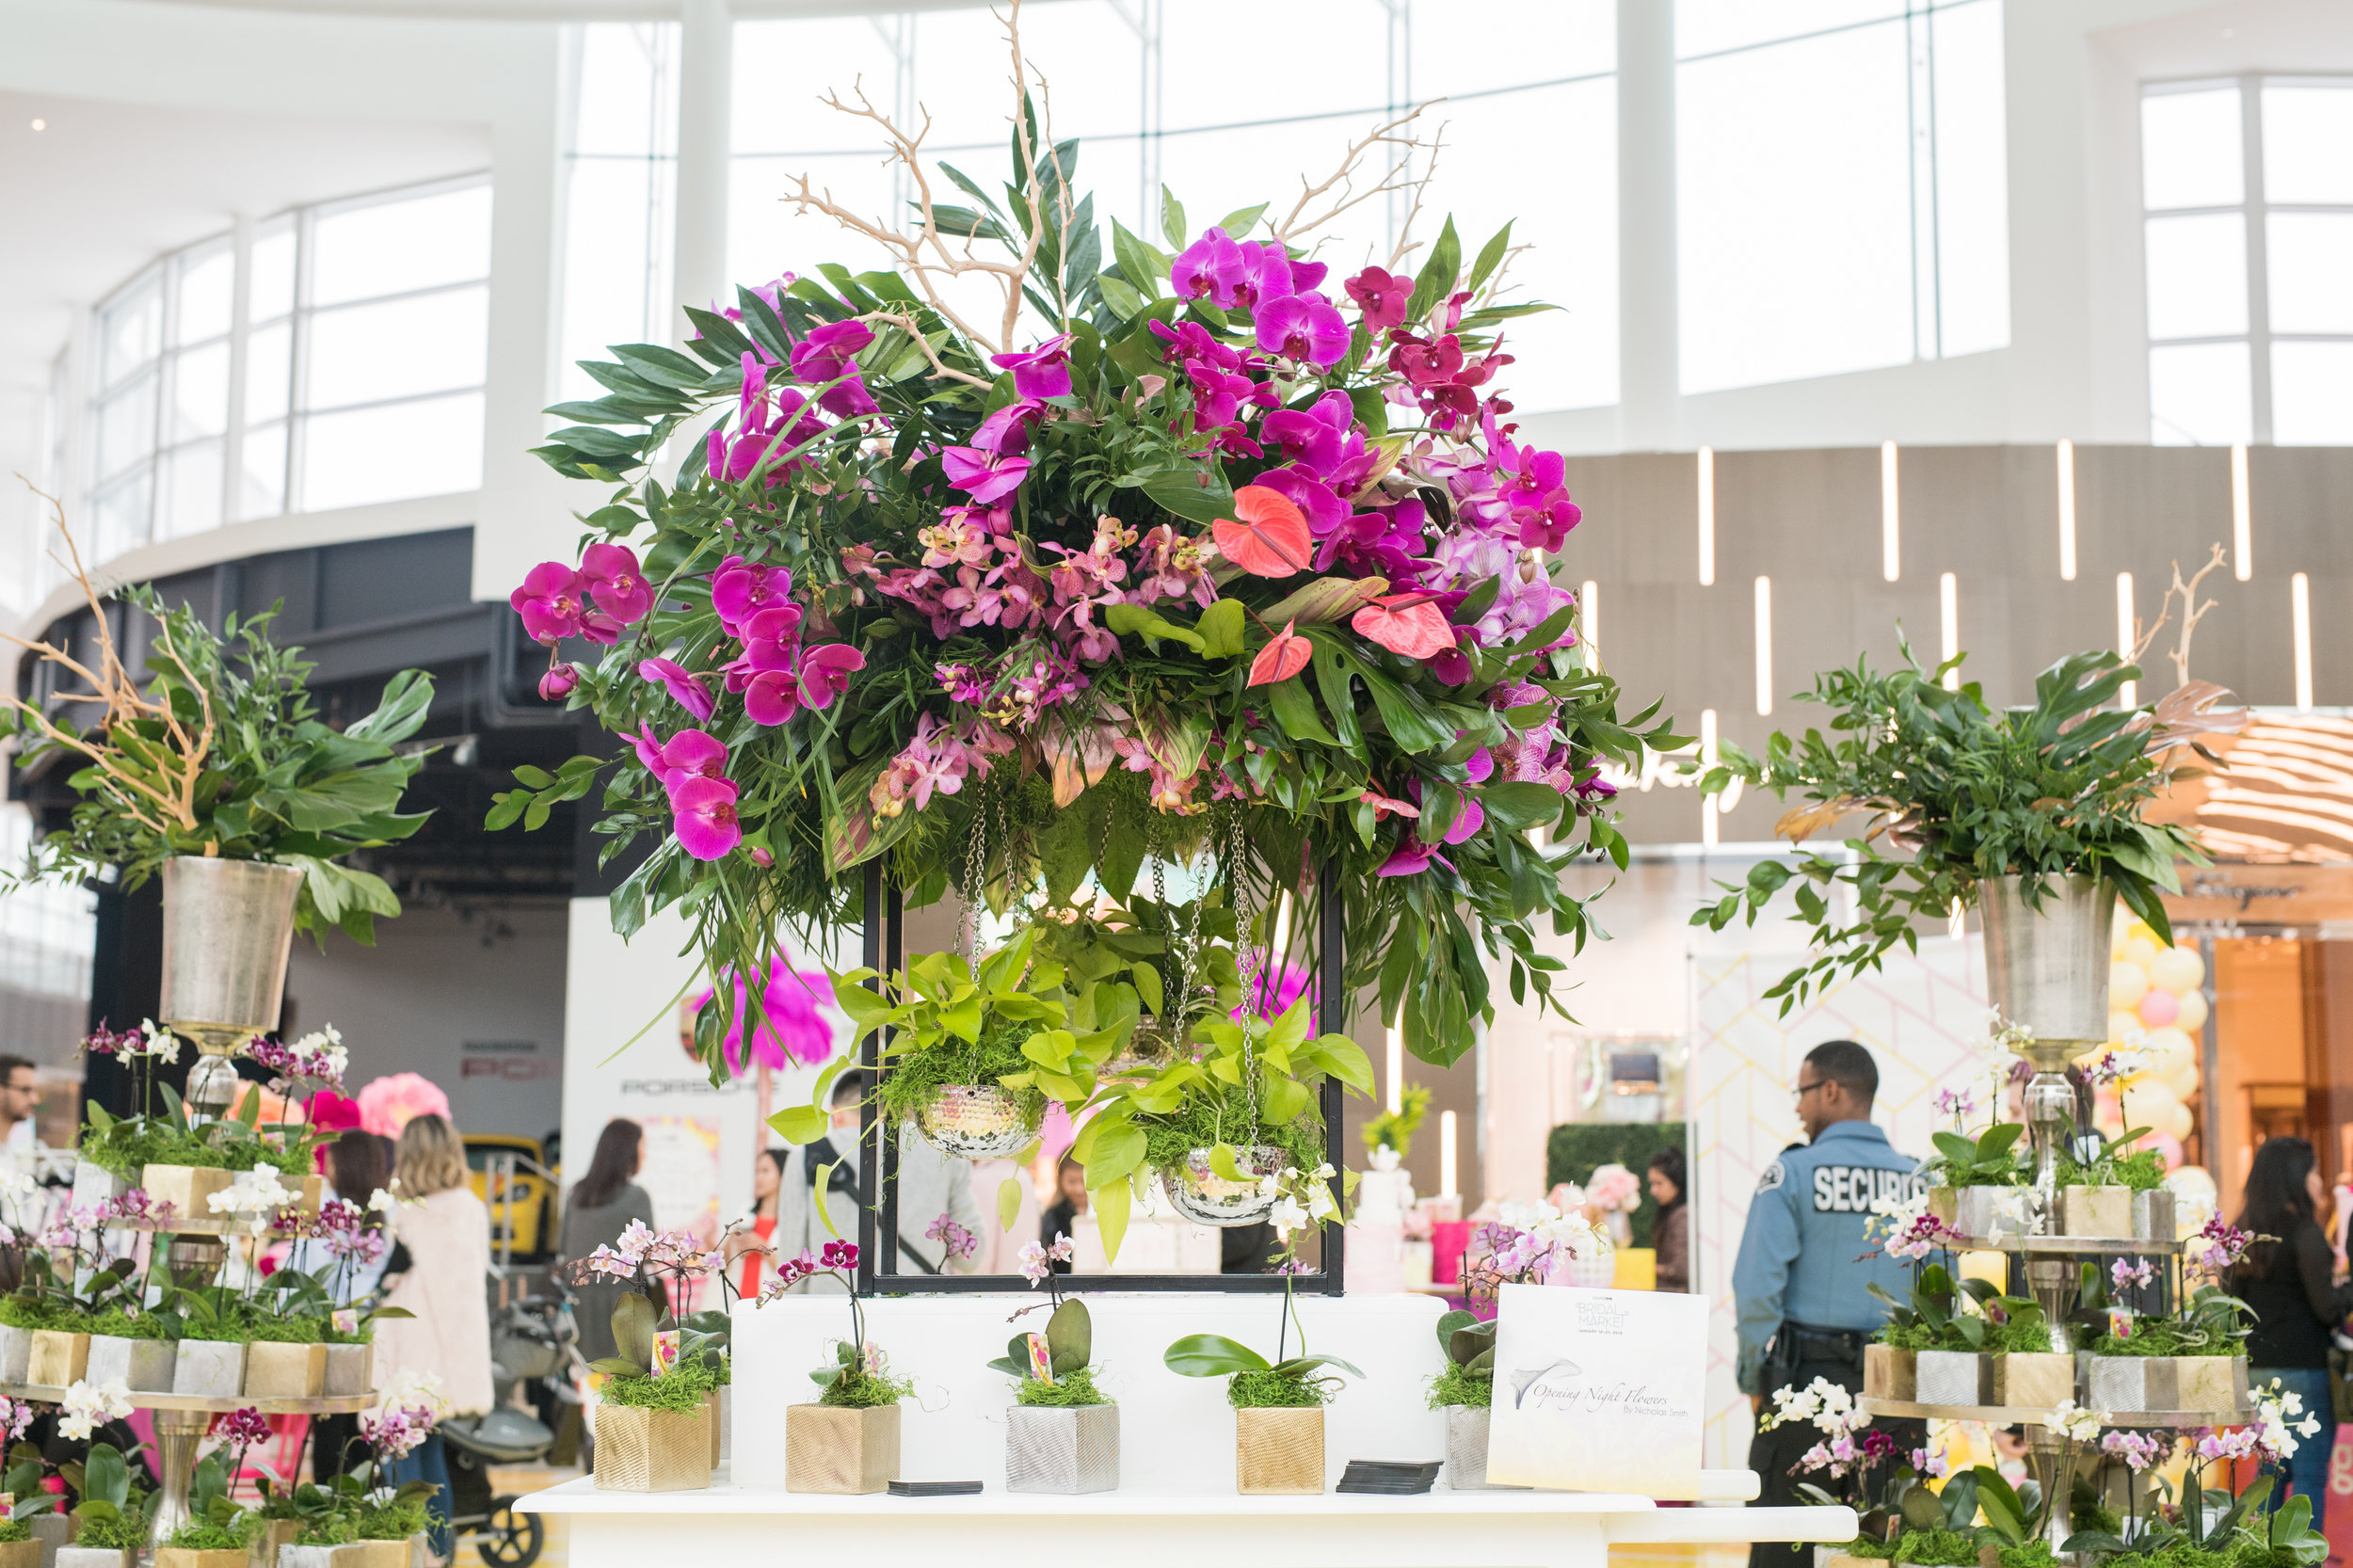 August In Bloom - Flower set up - #SQ1Bridal (Square One Shopping Centre)